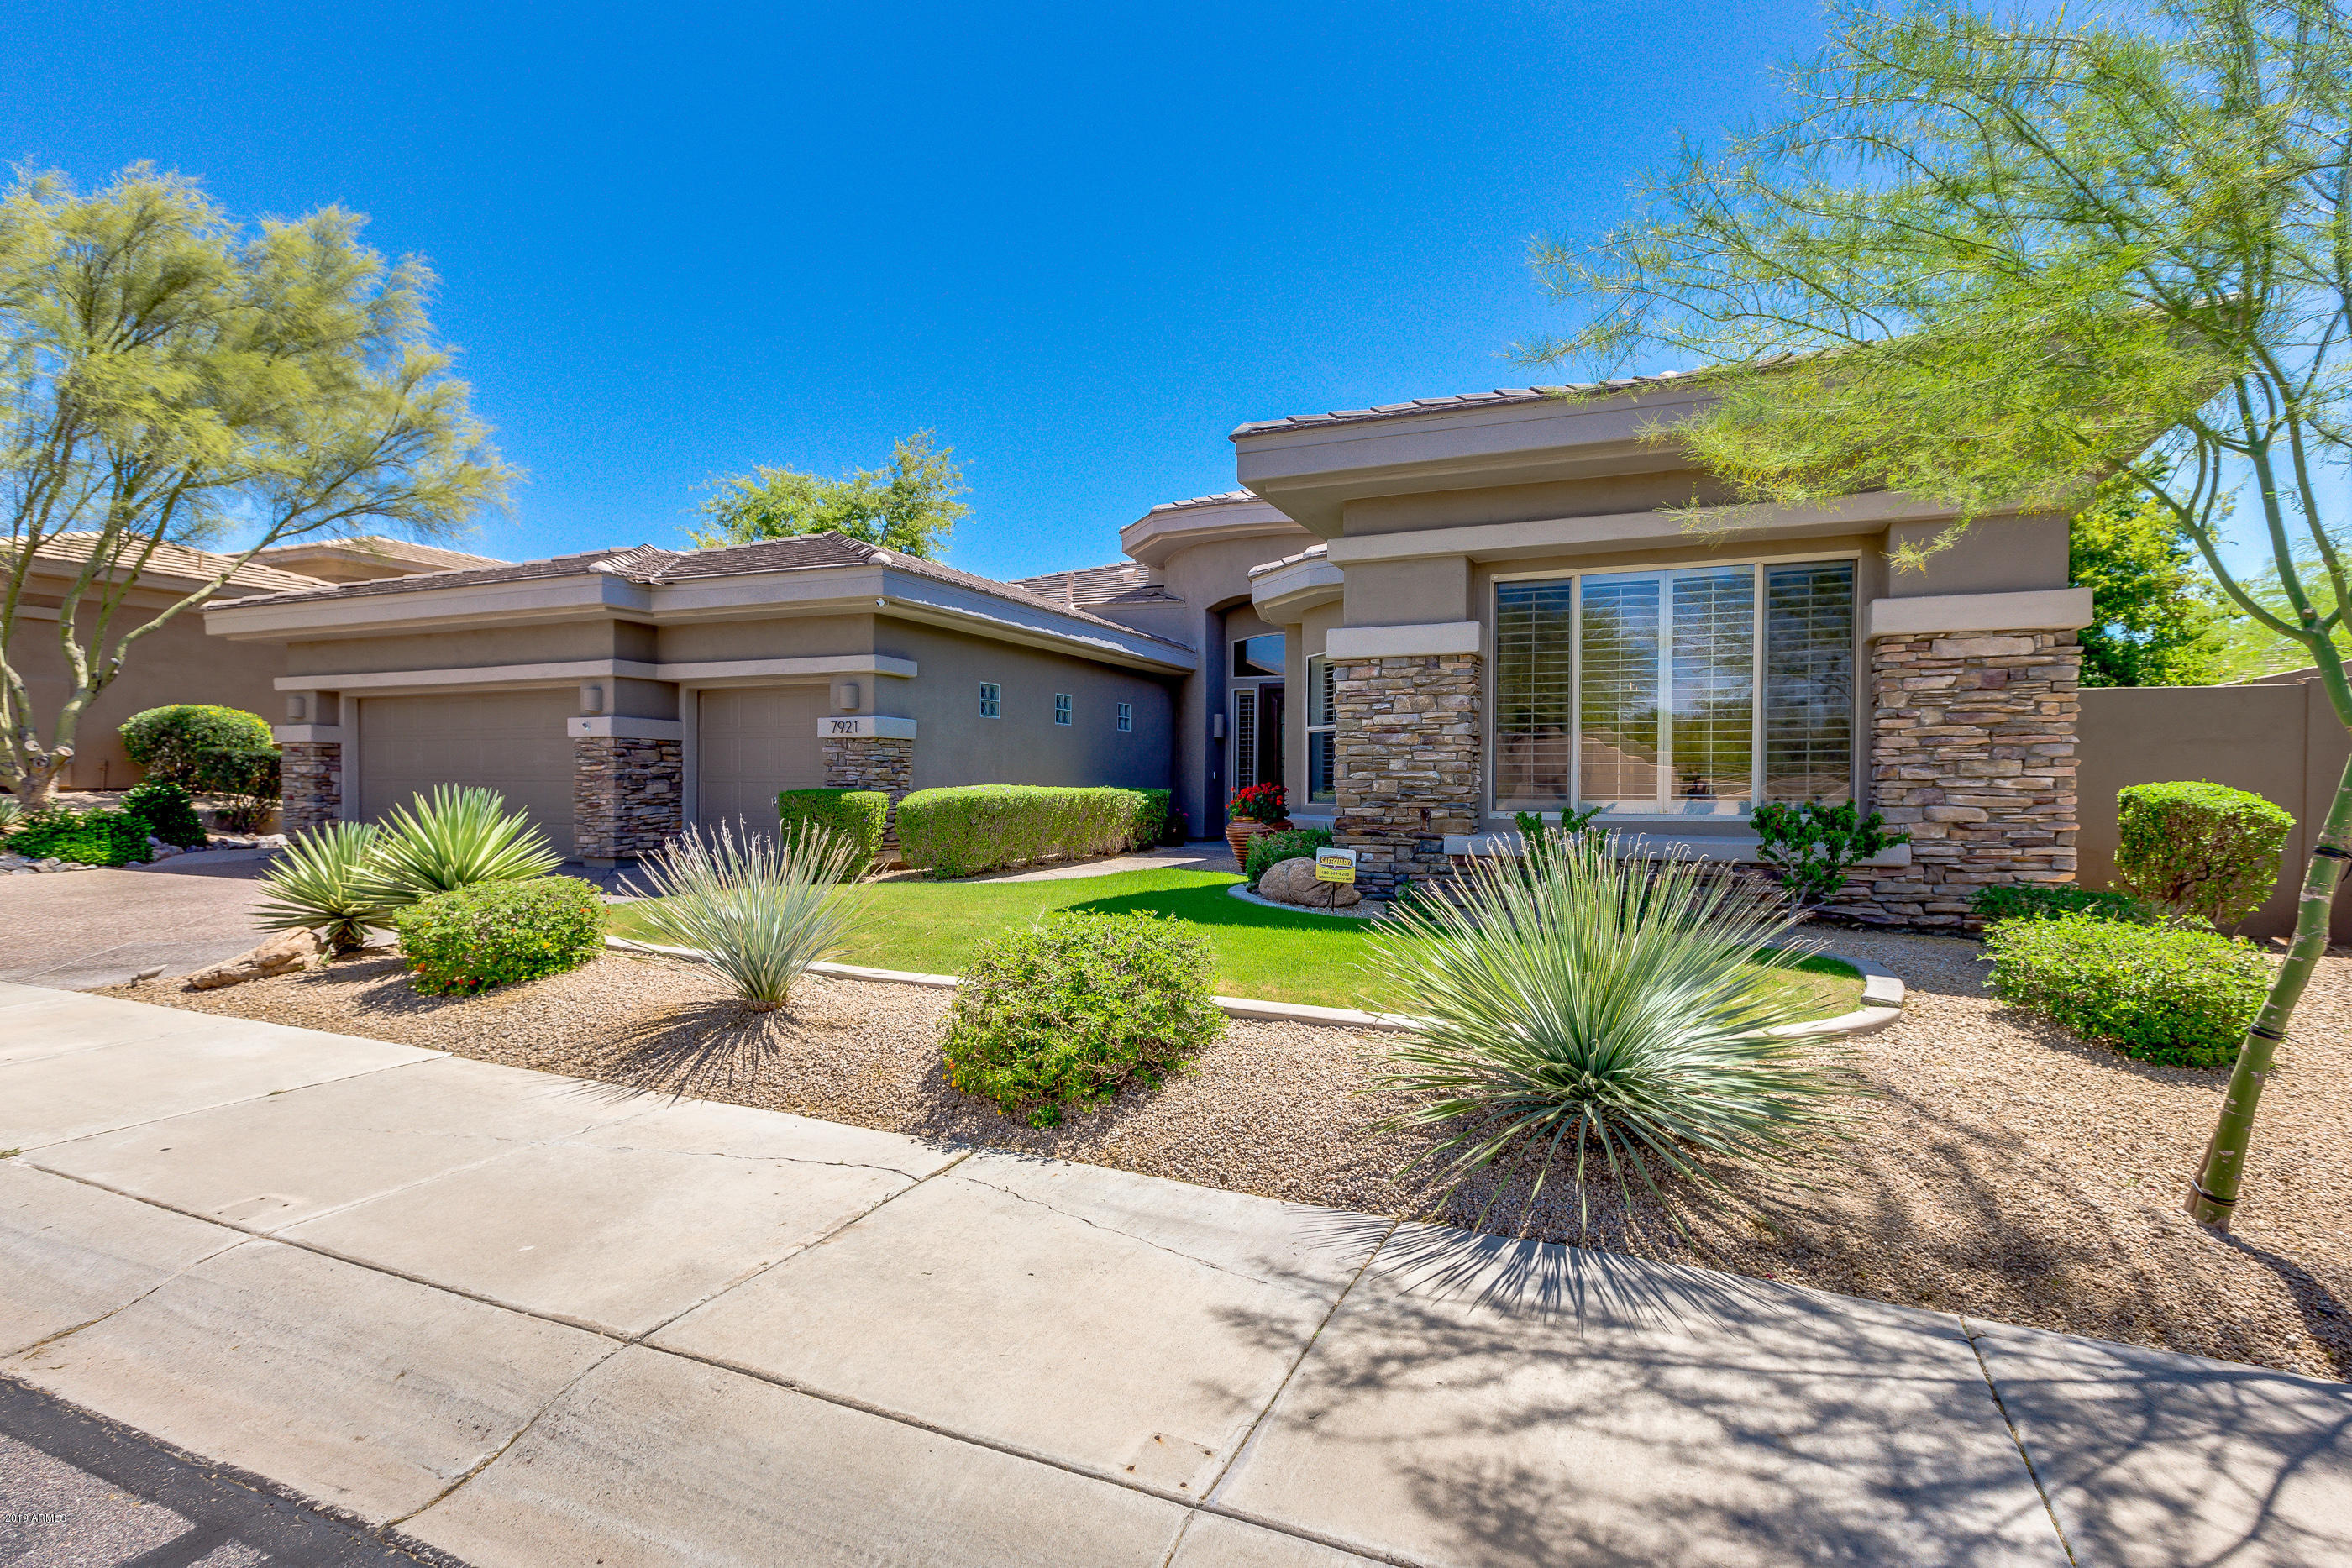 Photo of 7921 E TAILFEATHER Lane, Scottsdale, AZ 85255